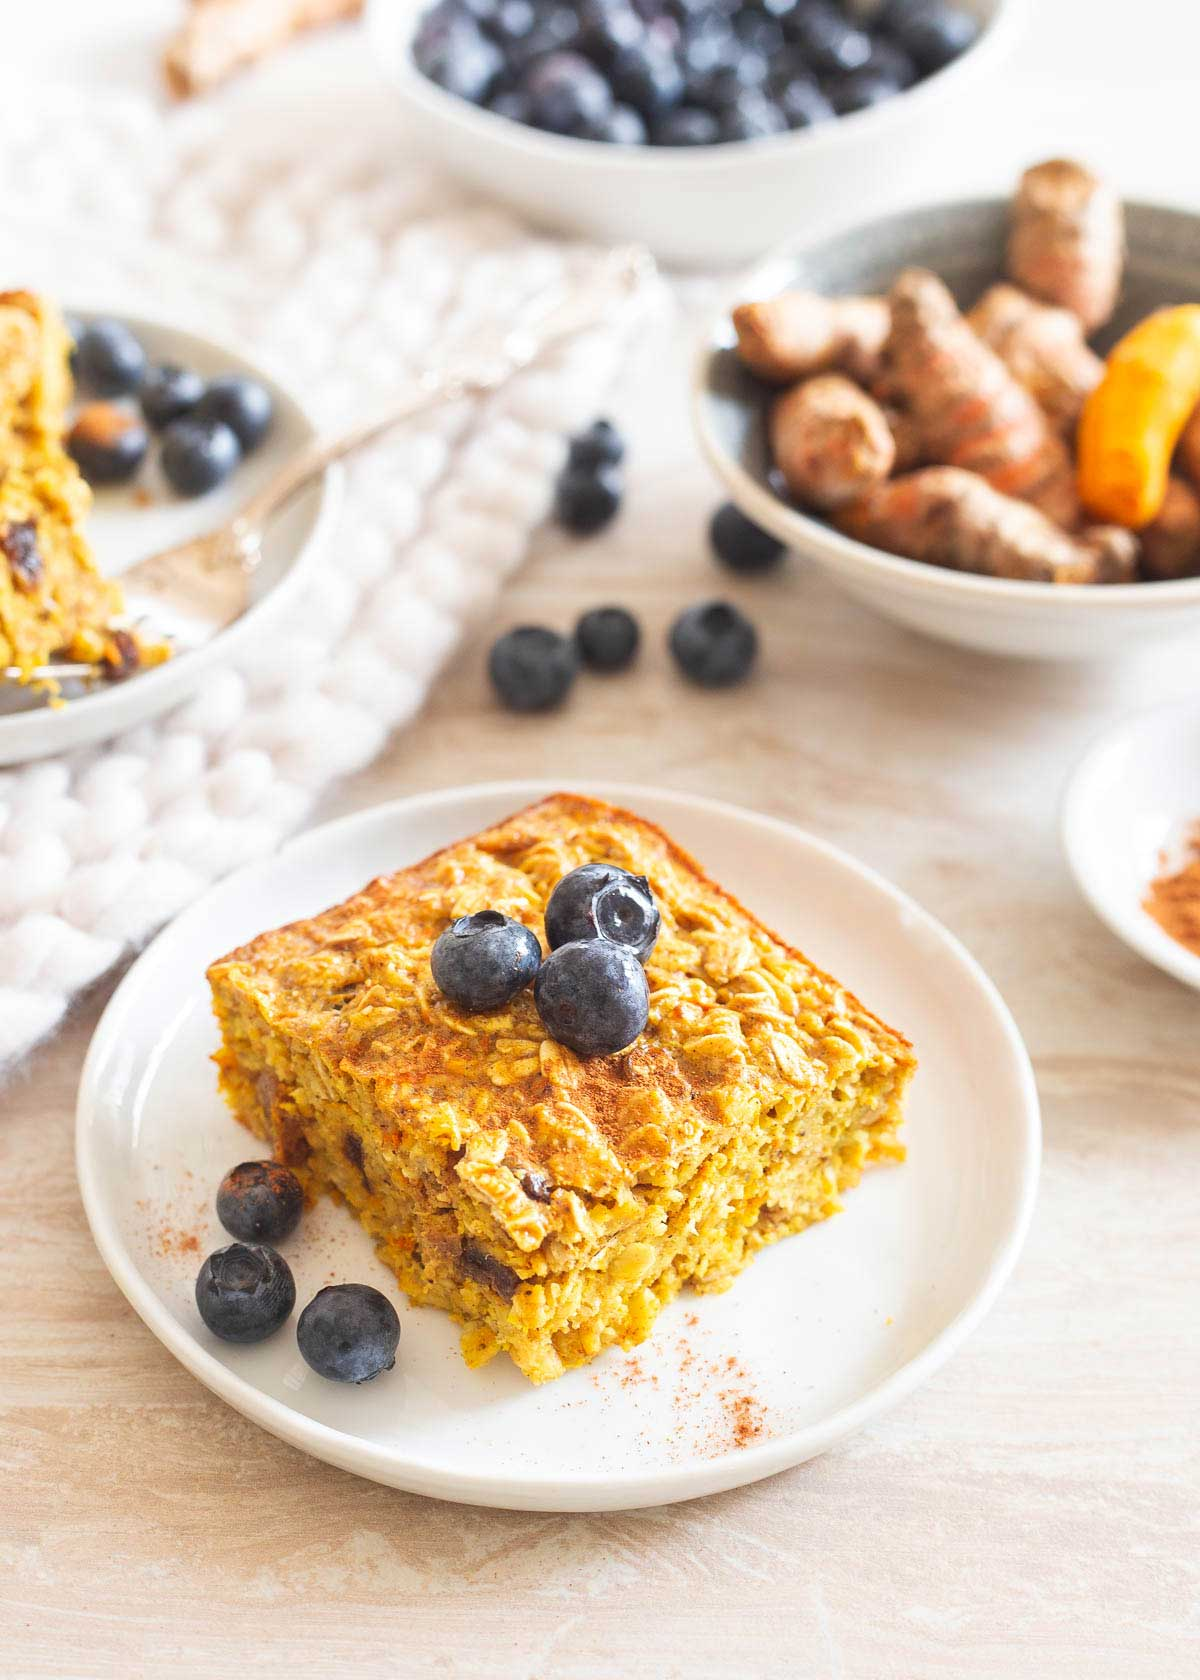 Golden baked oatmeal made with fresh turmeric is healthy, delicious and perfect for breakfast meal prep!